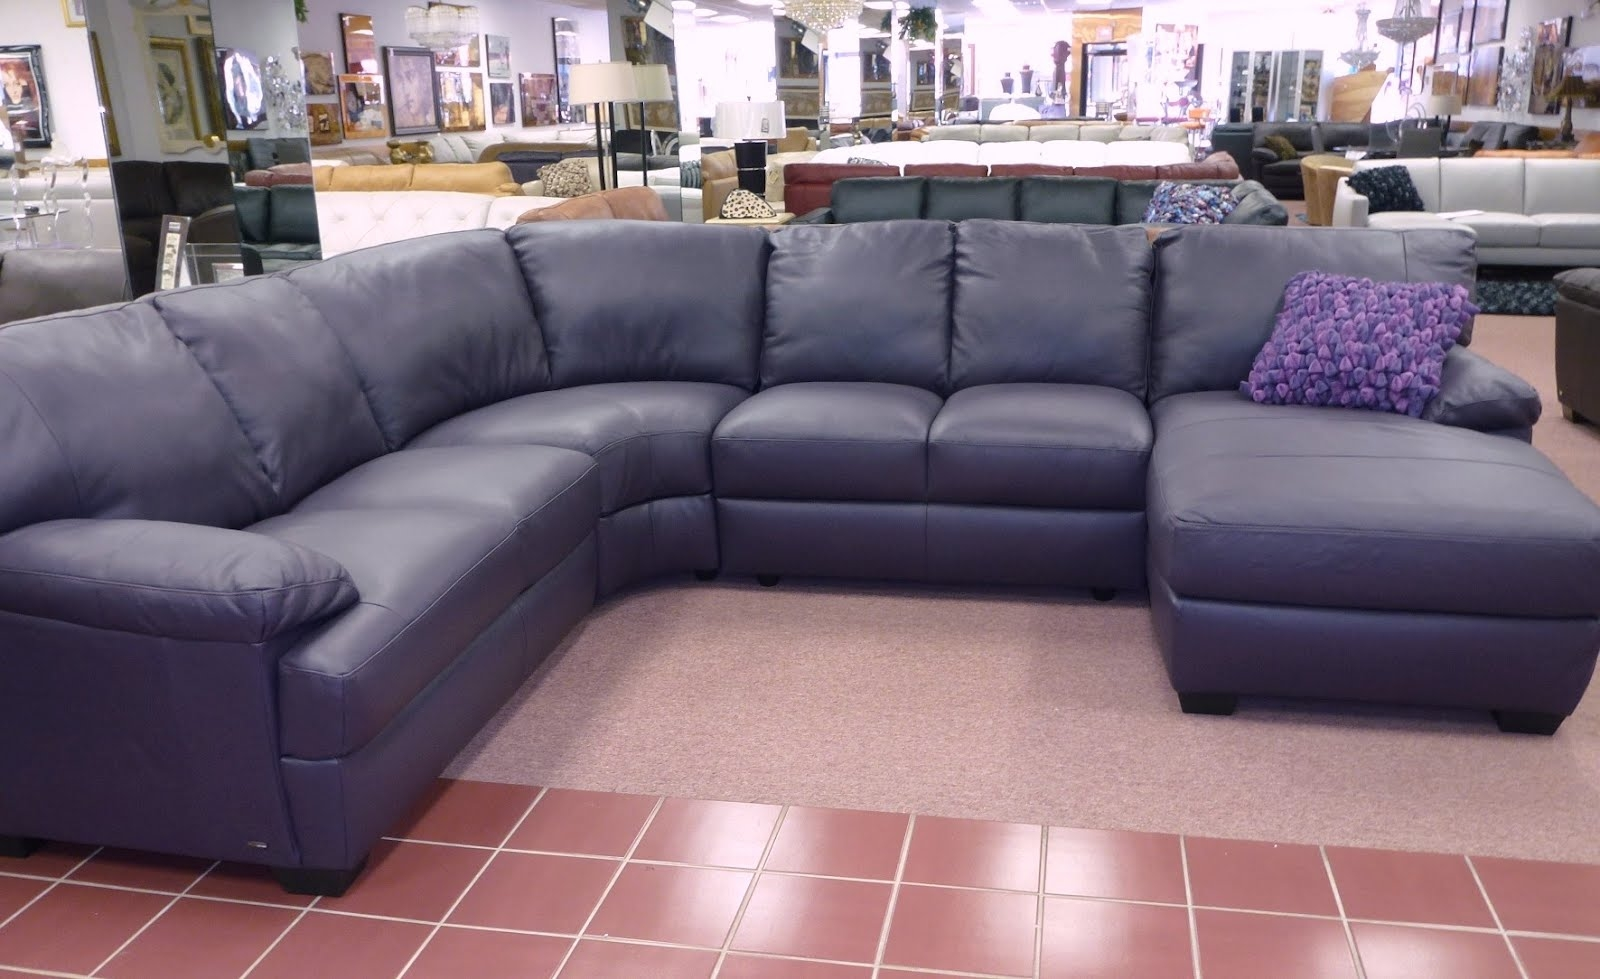 Eggplant Sectional Sofa Hotelsbacau For Eggplant Sectional Sofa (#9 of 12)